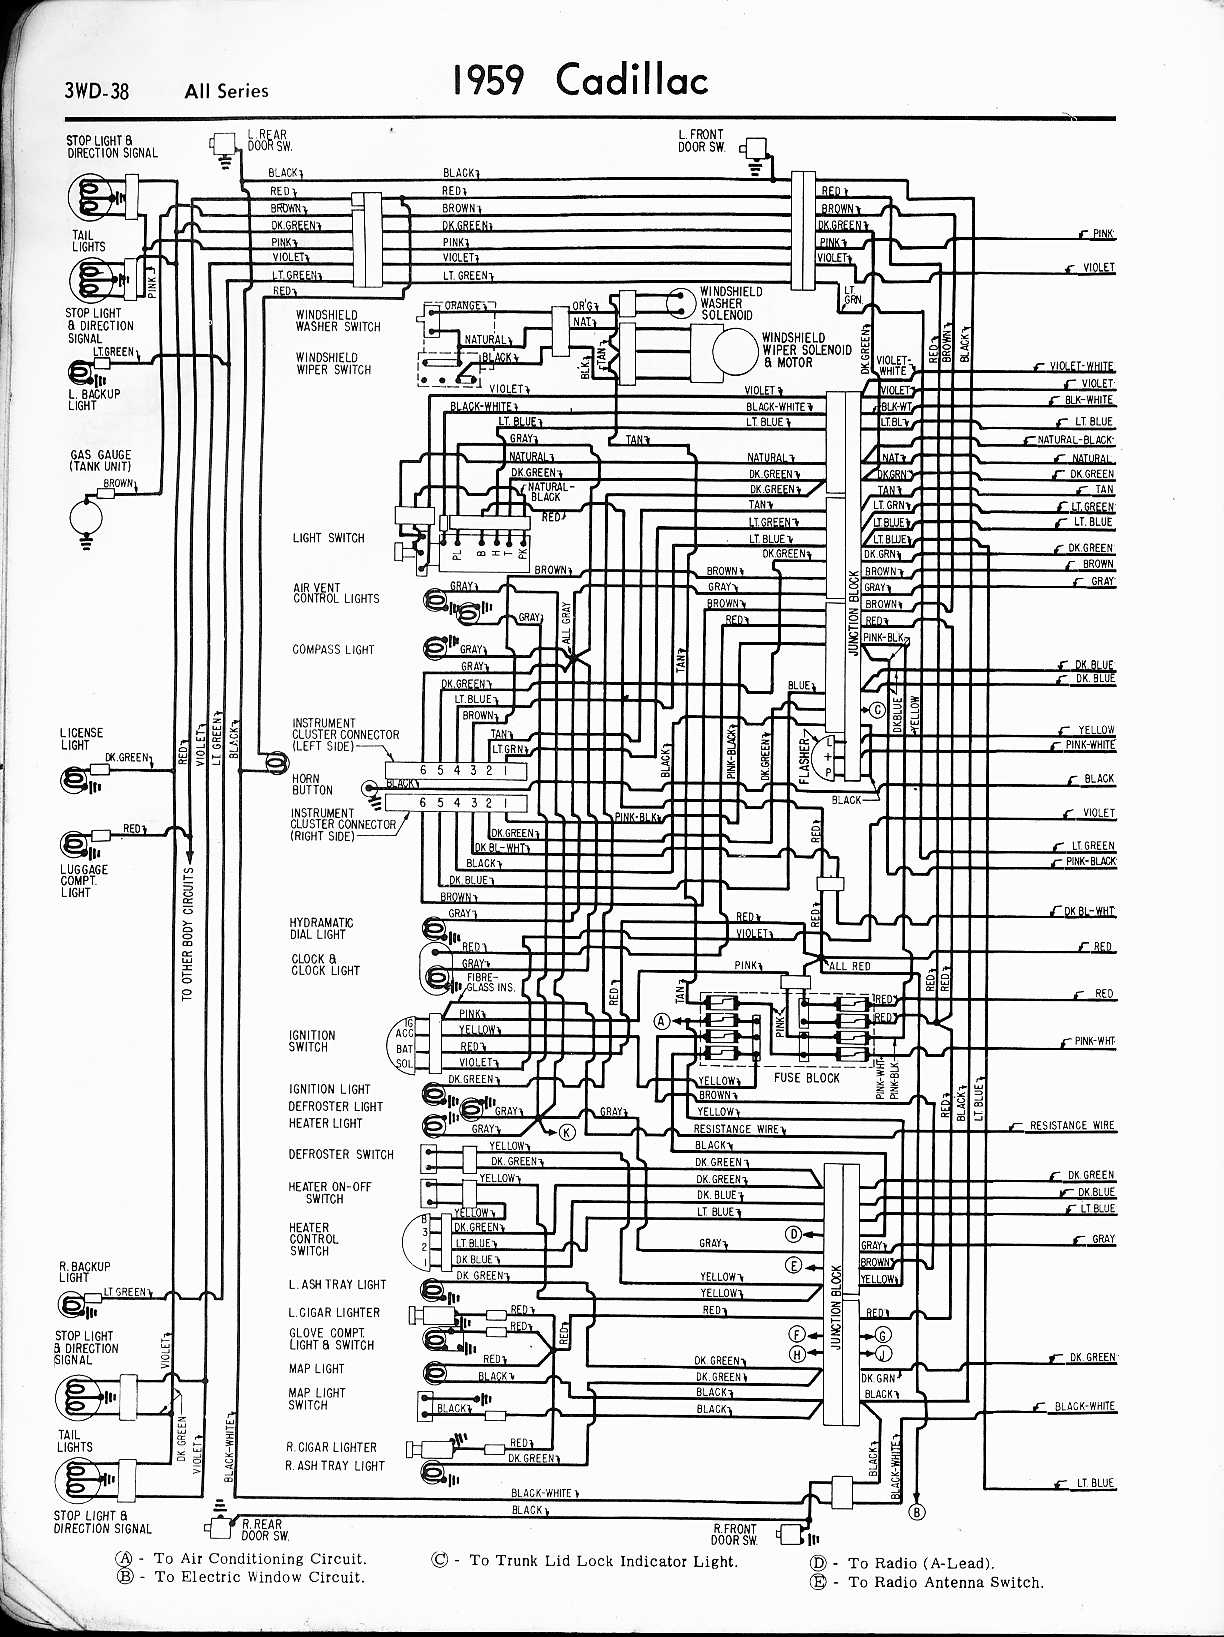 1954 cadillac wiring diagrams everything you need to know about rh newsnanalysis co